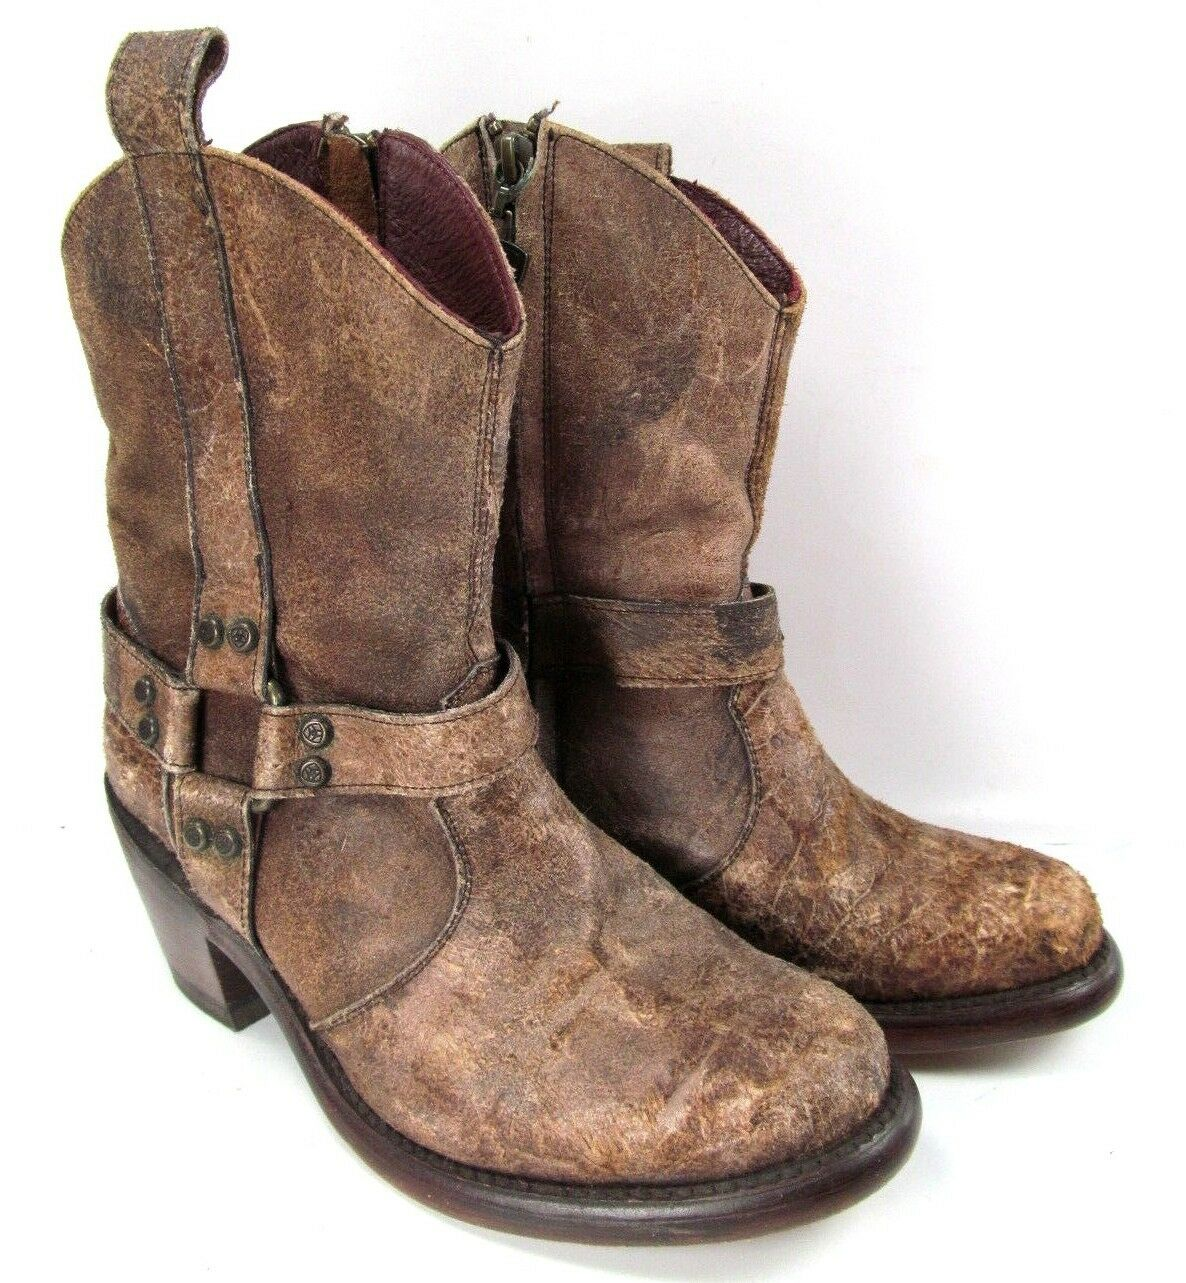 Ariat Womens Distressed Harness Western Boots shoes Size 6 EUC